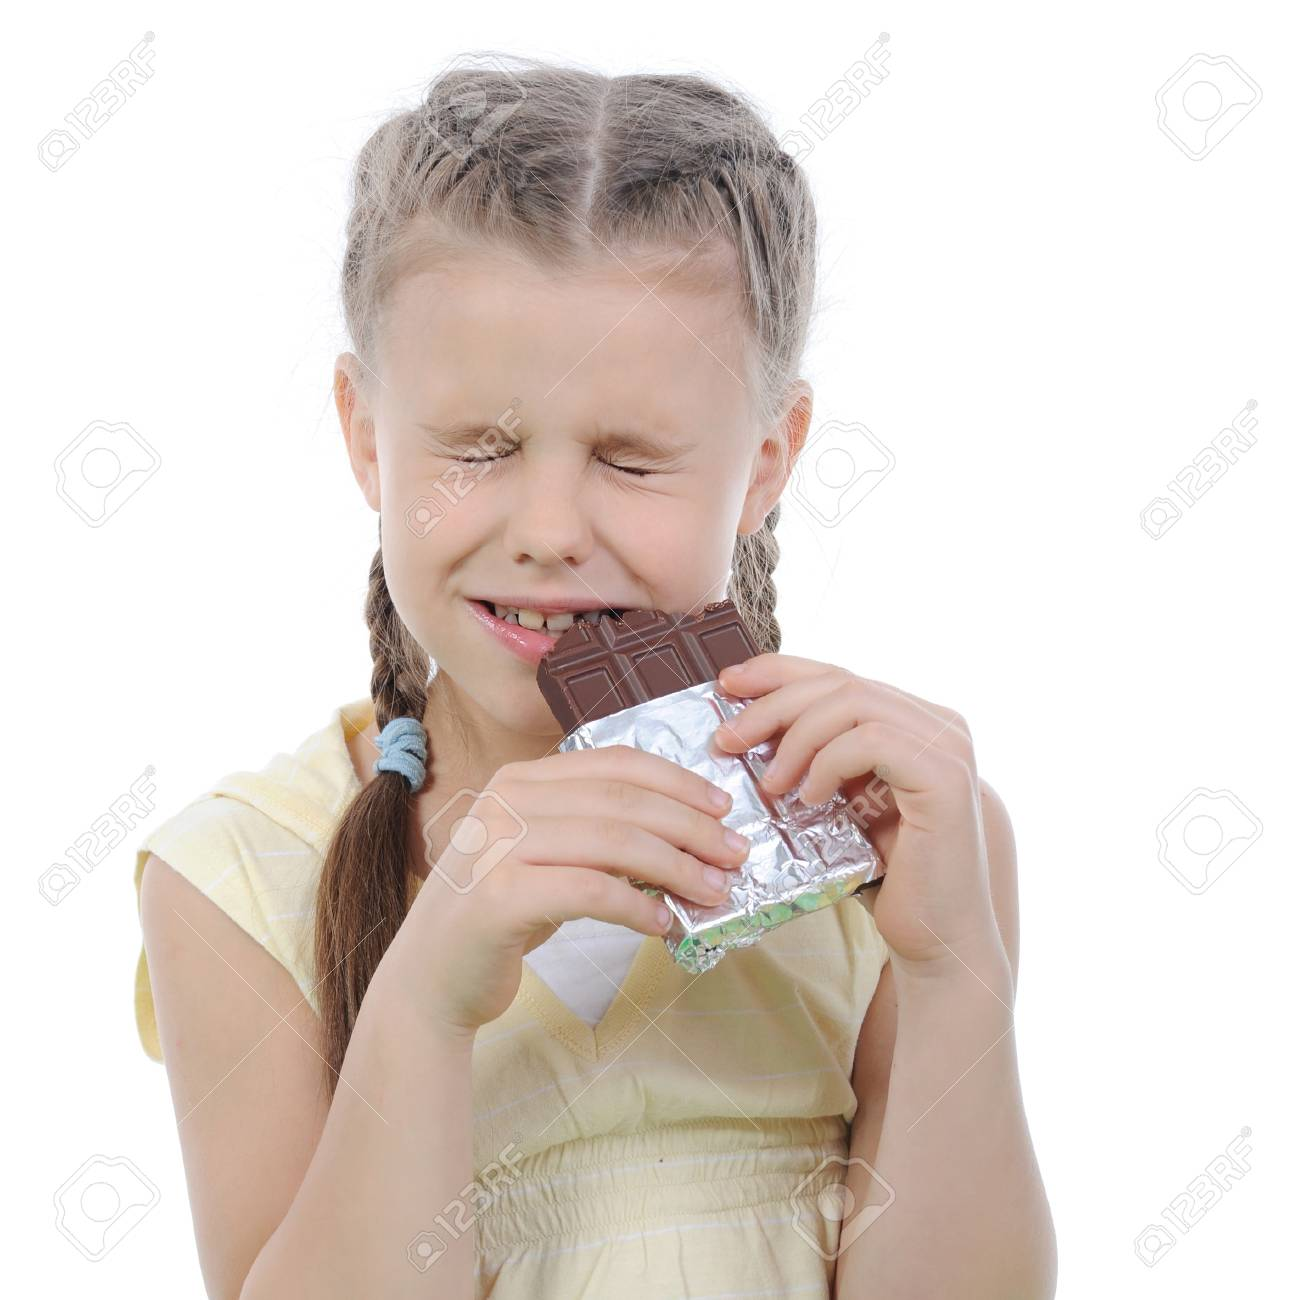 Little girl eating chocolate. Isolated on white background Stock Photo - 7799676